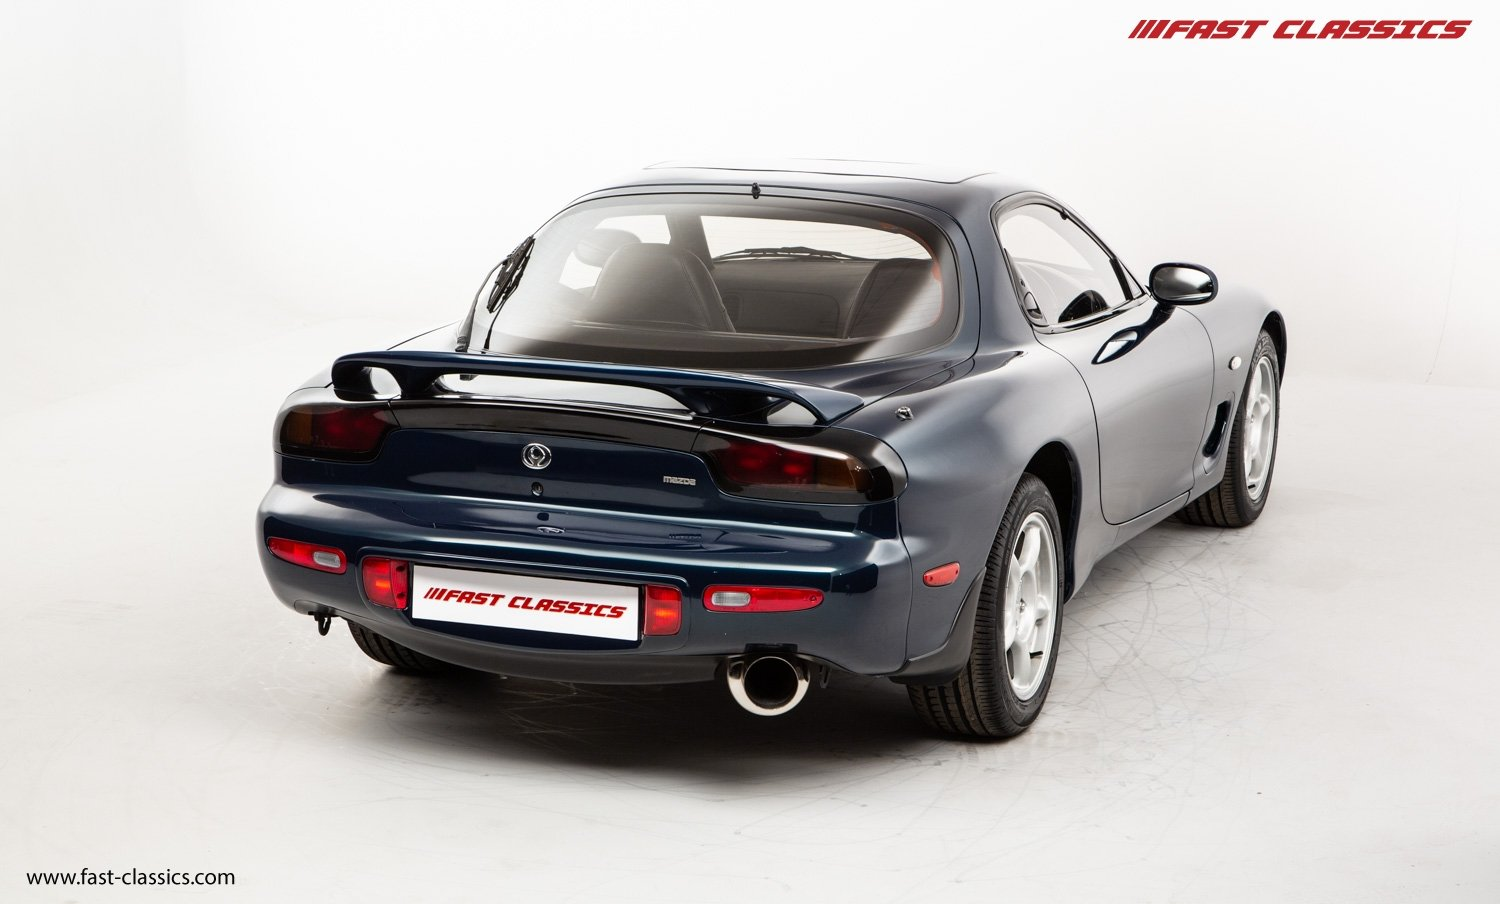 1993 MAZDA RX-7 FD // FAMILY OWNED // 26K MILES // 1 OF 210 UK DE For Sale (picture 9 of 23)